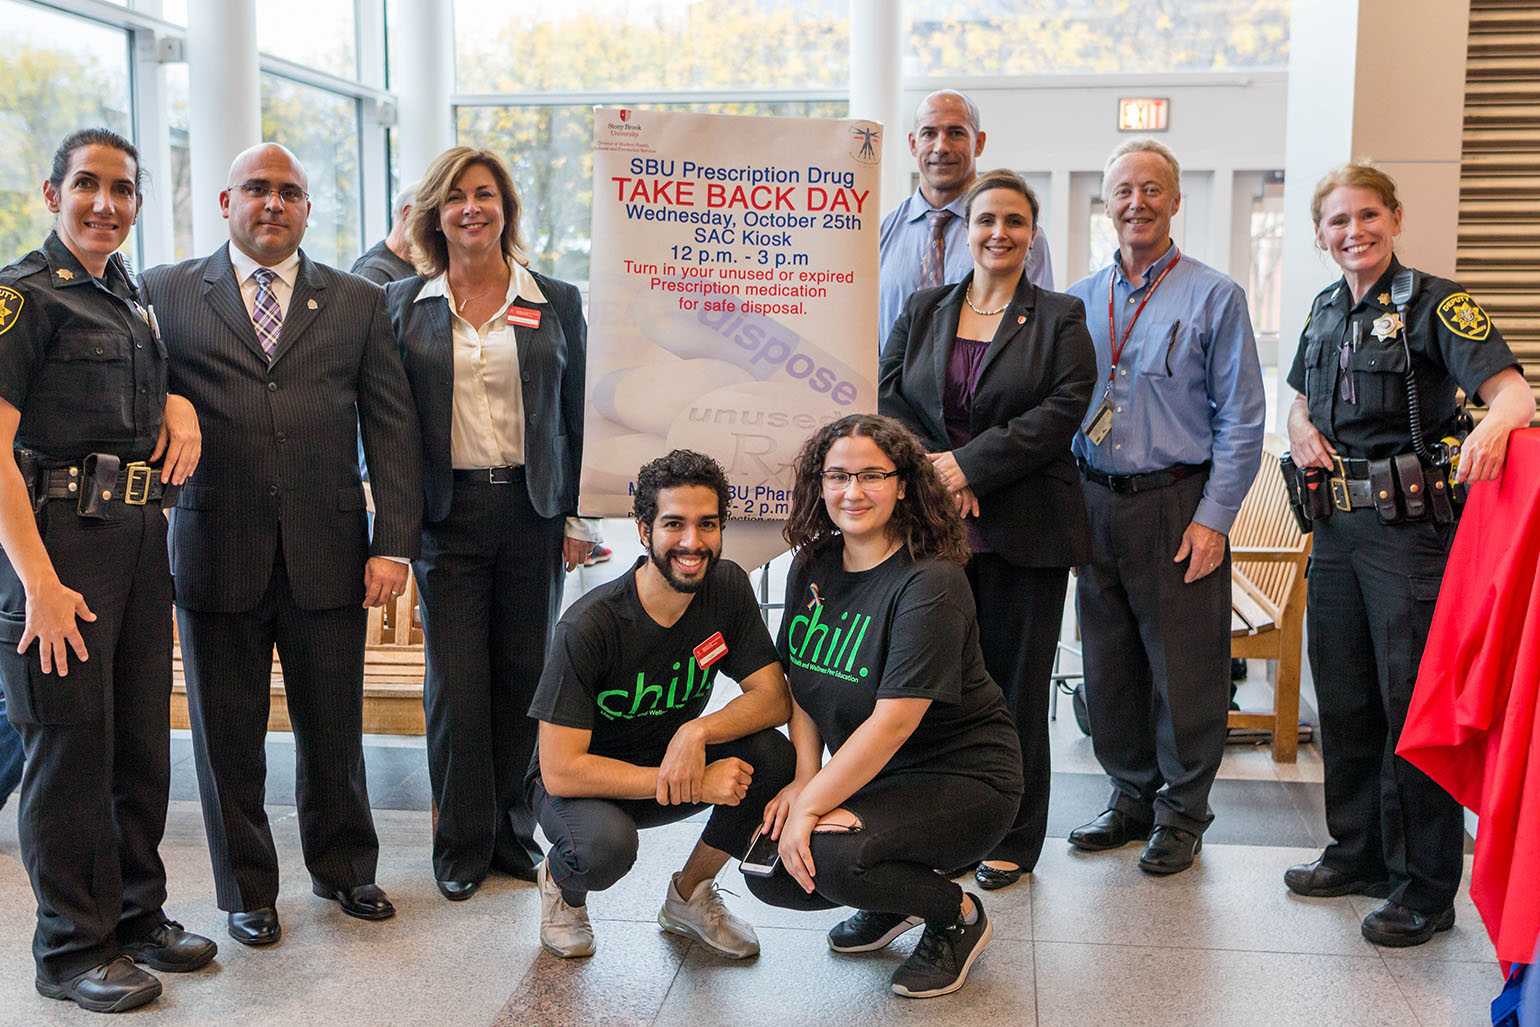 The Suffolk County Sheriff's Office, University Police, the Division of Student Health, Wellness and Prevention Services, and the CHILL peer education group joined efforts to make Take Back Day a success.